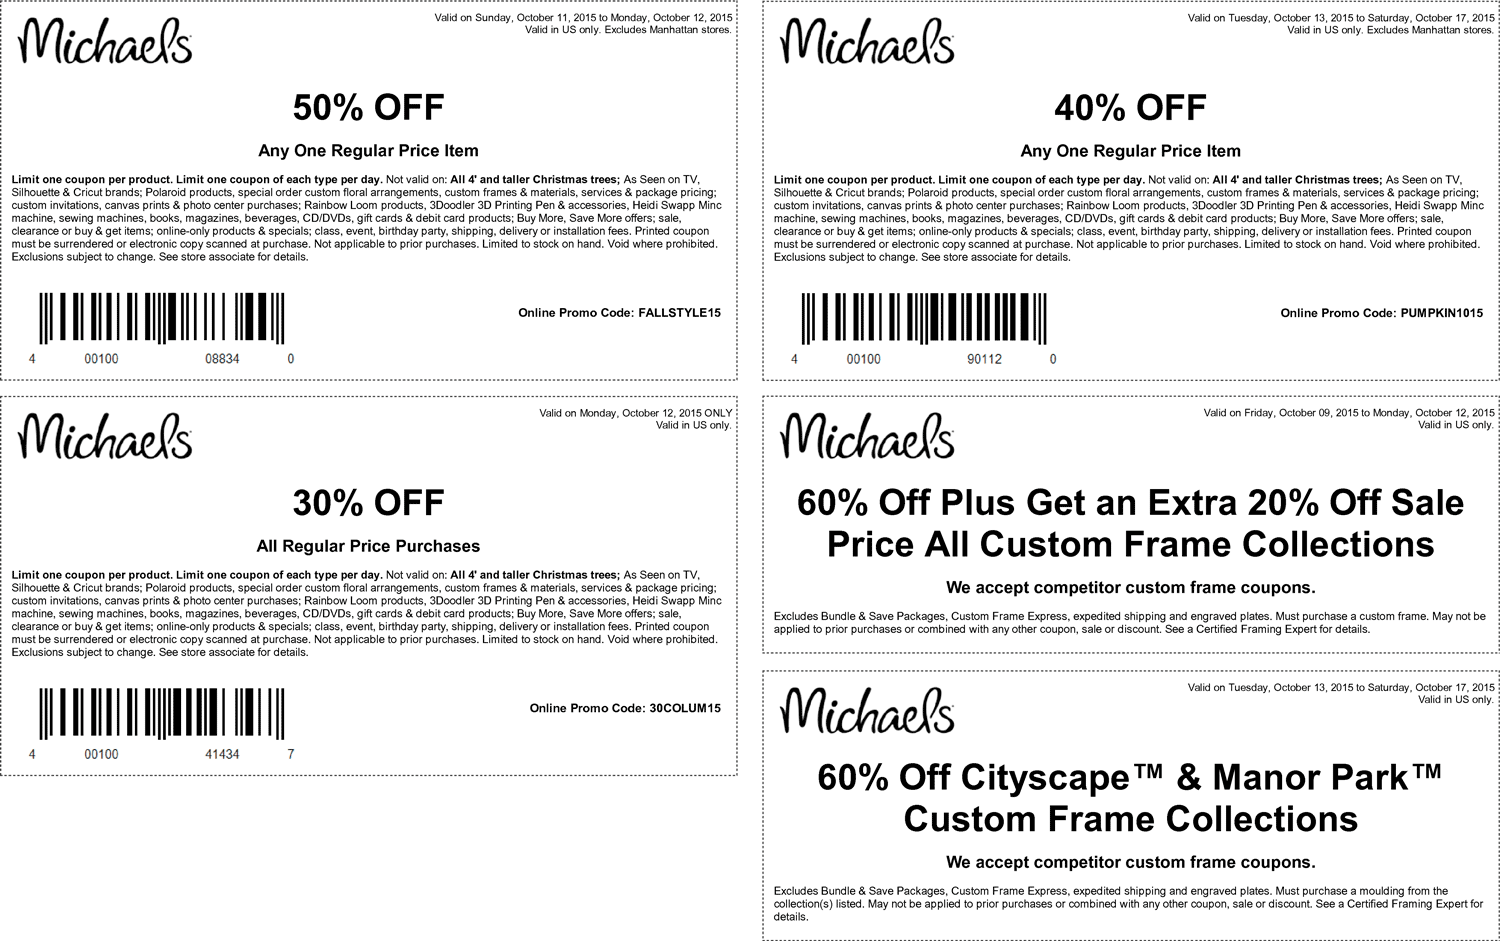 Michaels Coupon April 2017 50% off a single item & more at Michaels, or online via promo code FALLSTYLE15